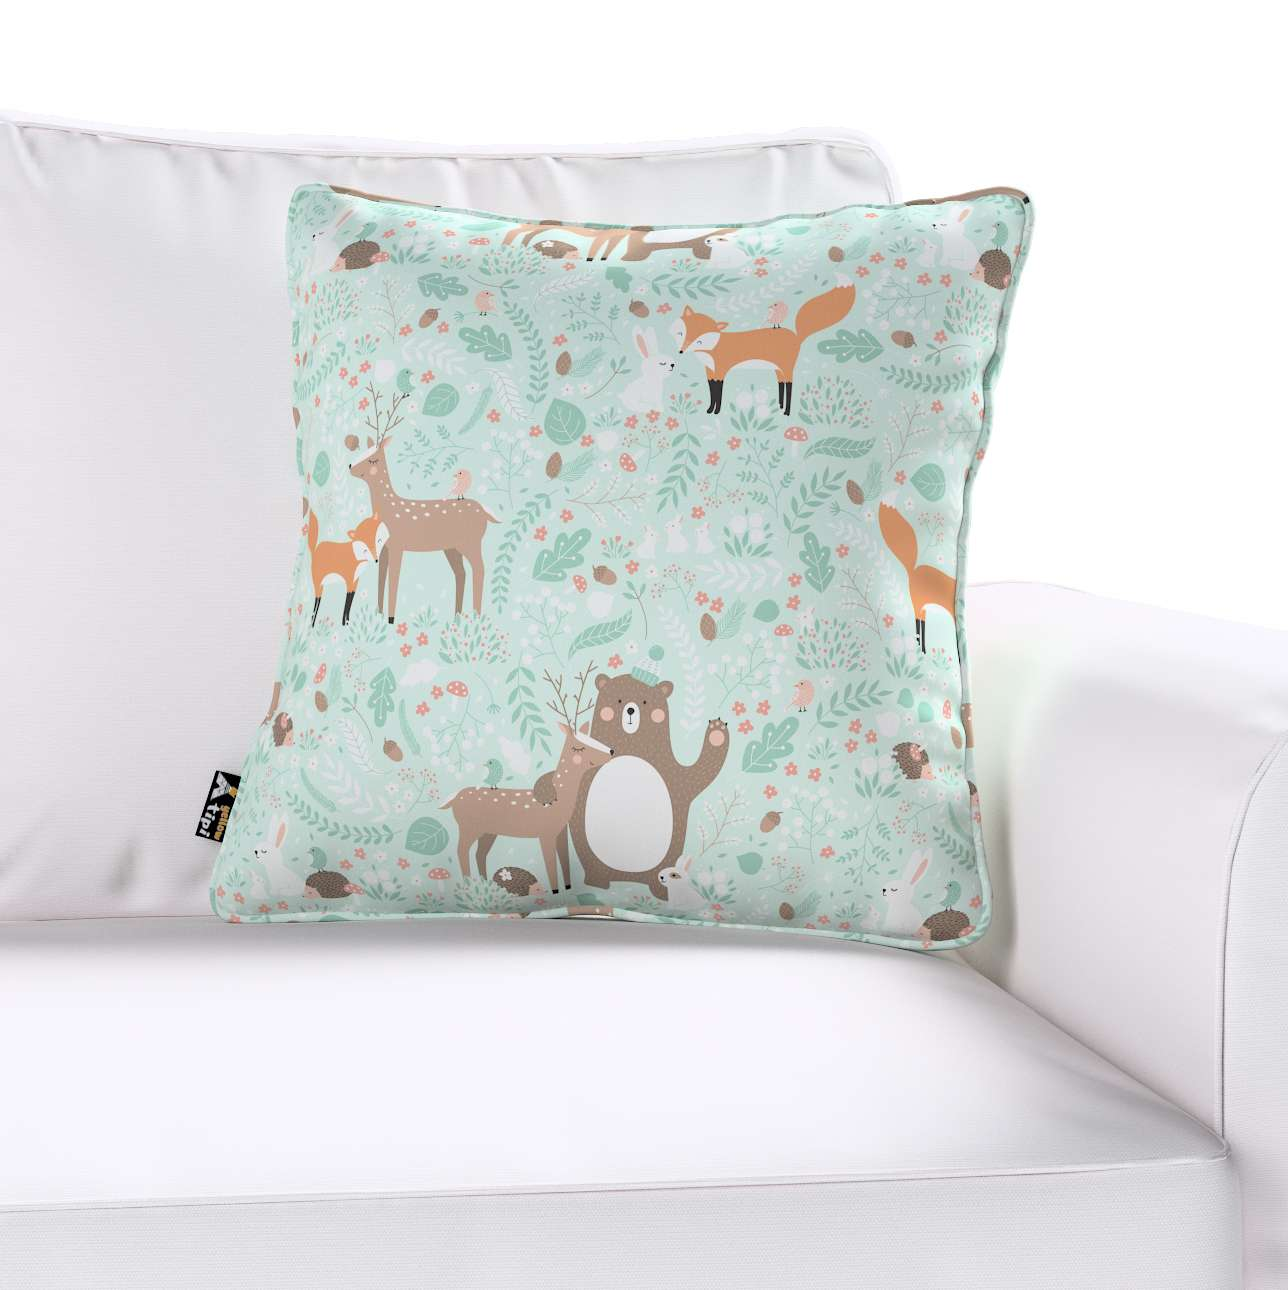 Lola piped cushion cover in collection Magic Collection, fabric: 500-15